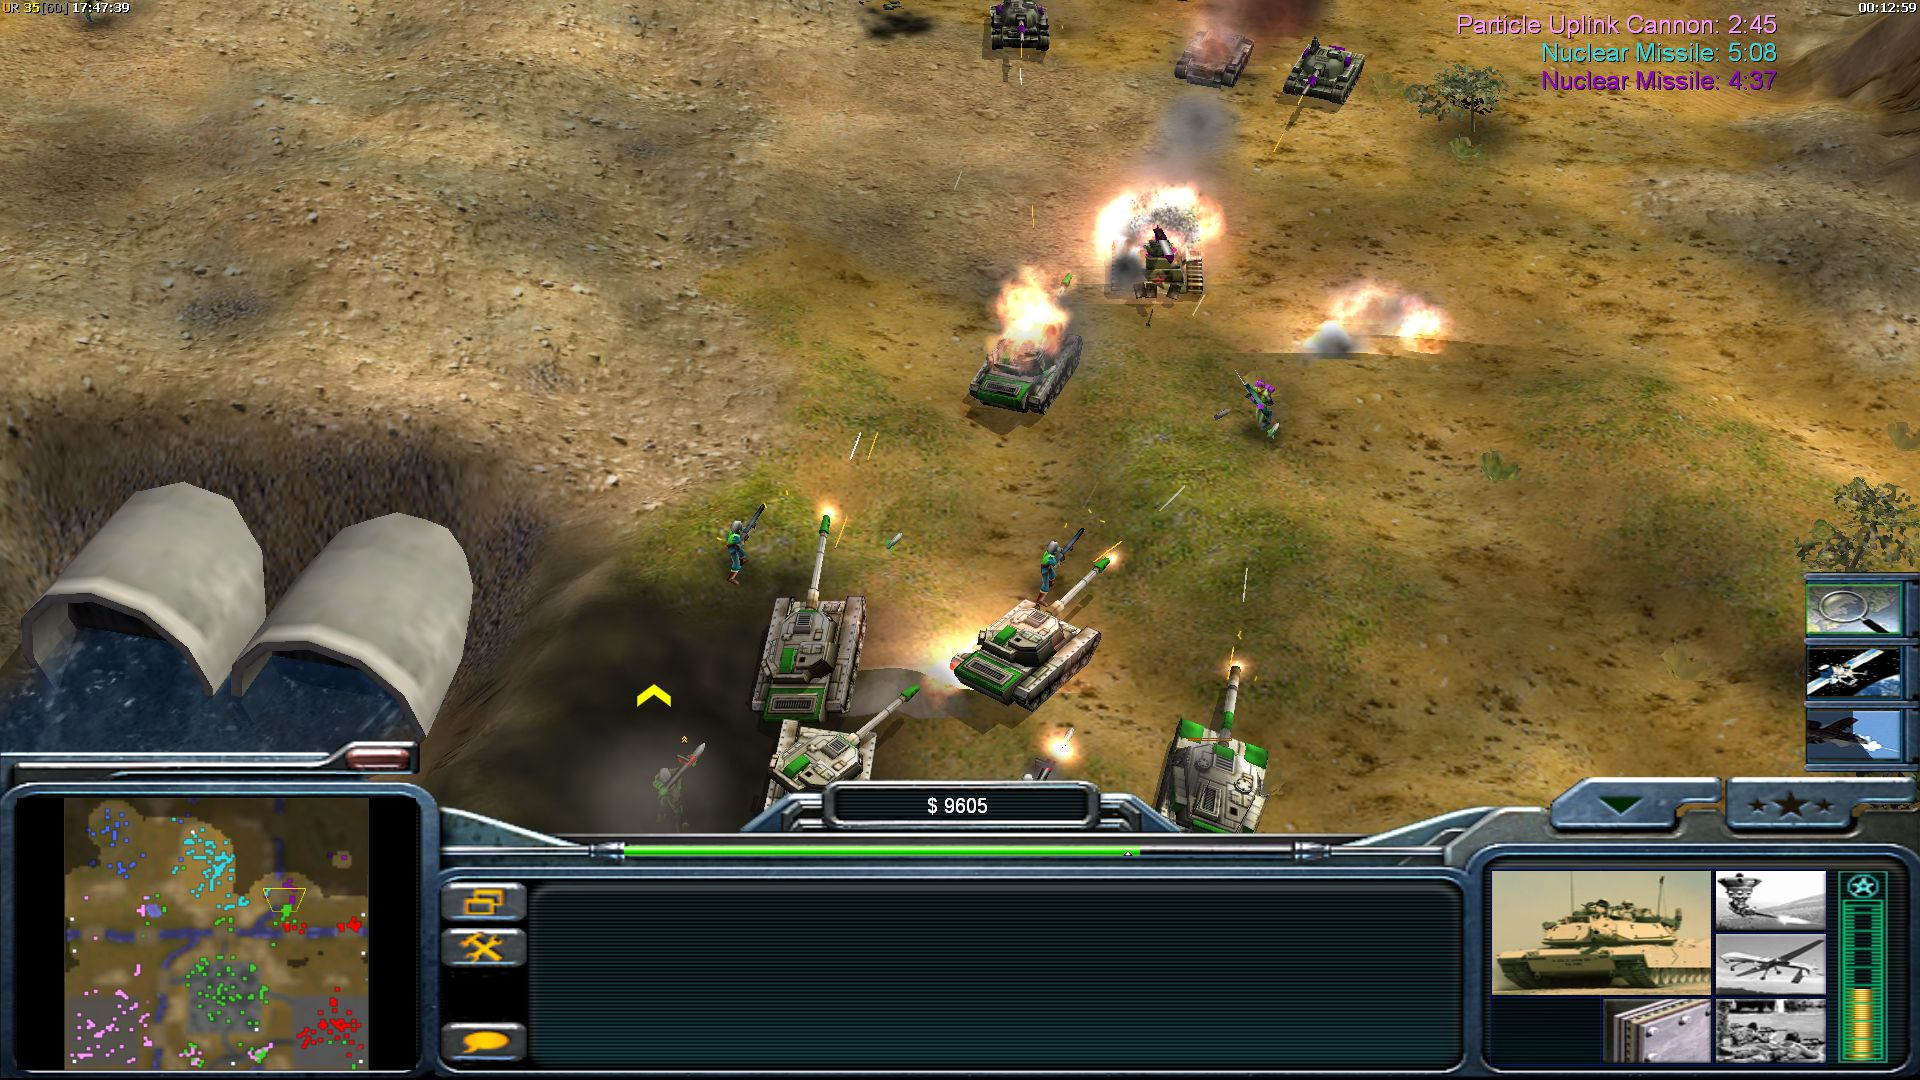 View the mod db earth conflict mod for cc: generals zero hour image pla upgrades - redone earth conflict mod for cc